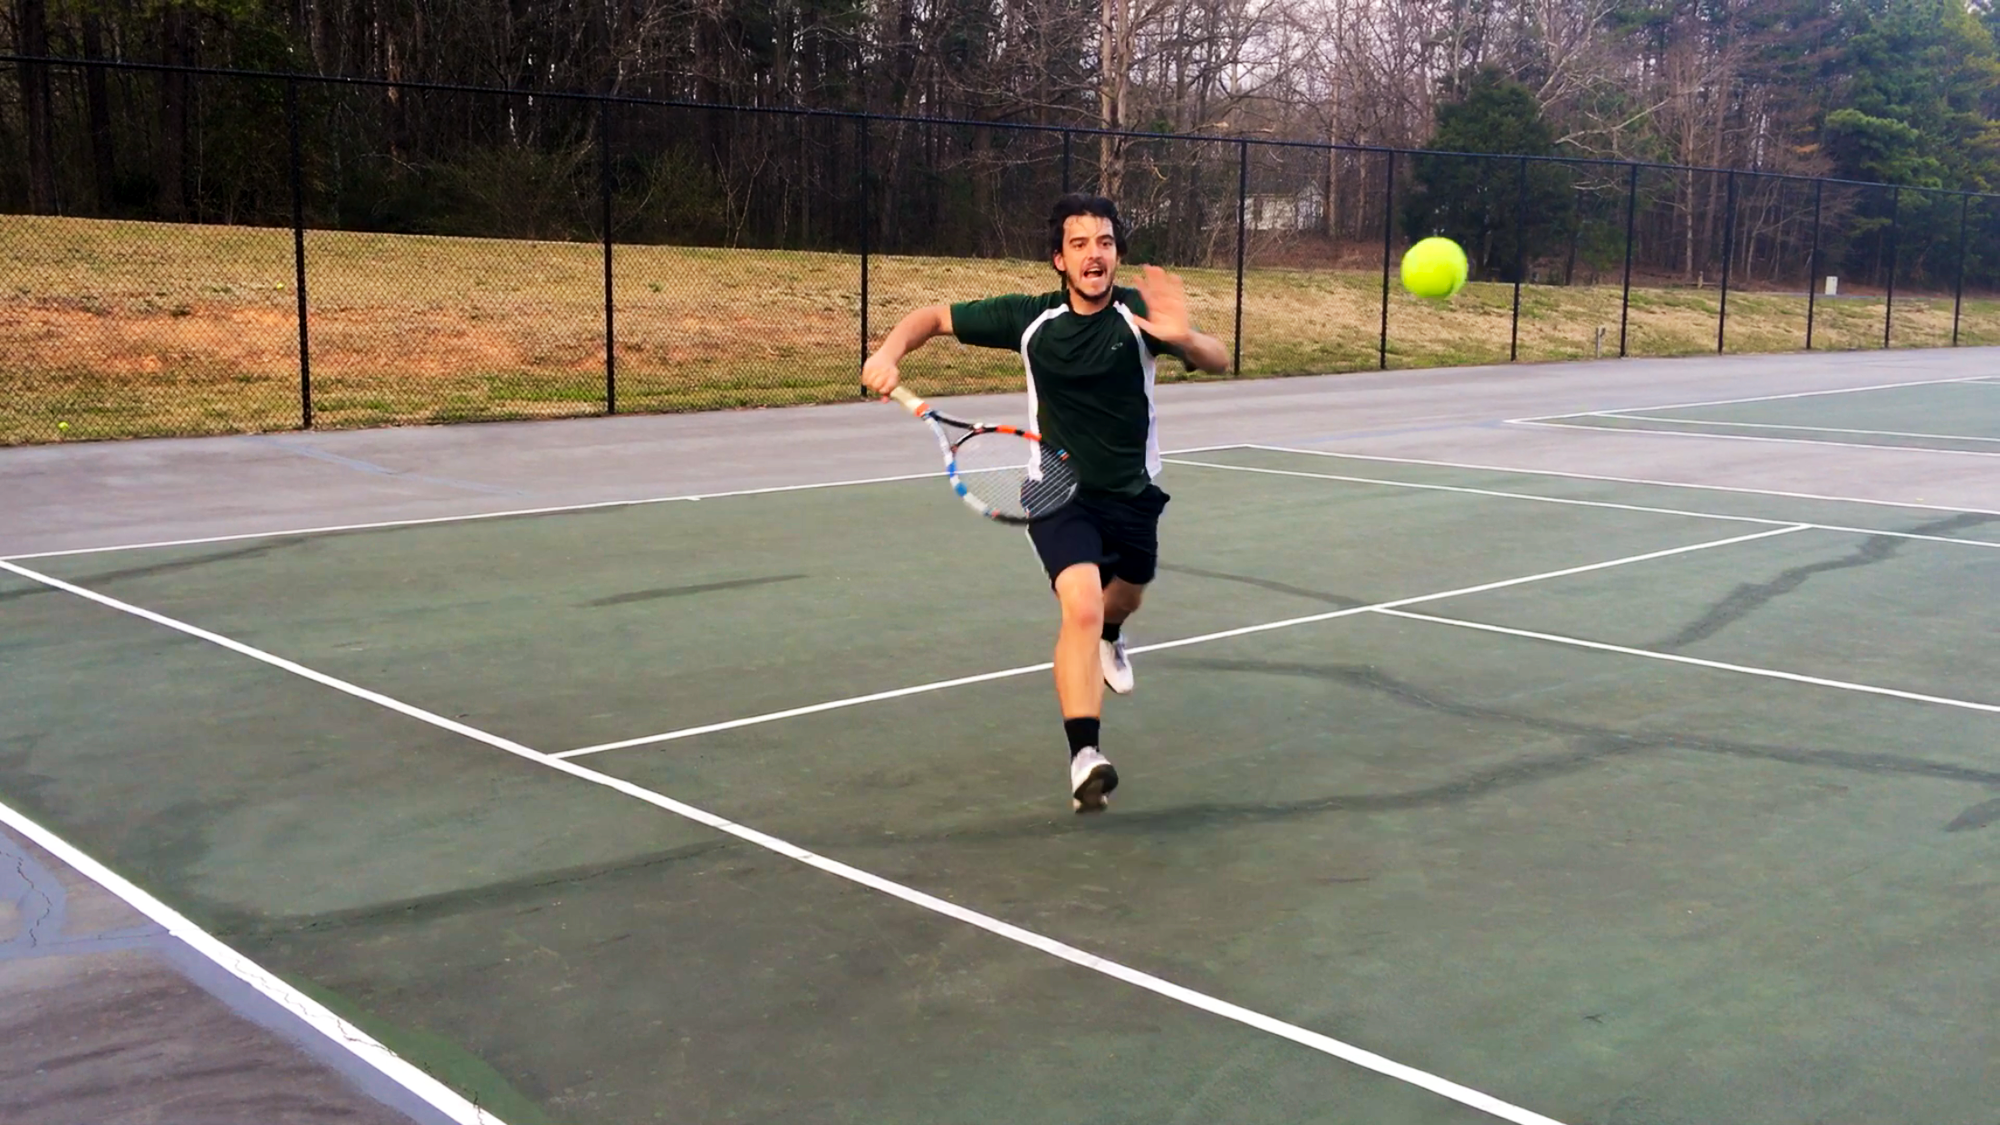 Tj L. teaches tennis lessons in Lexington, NC